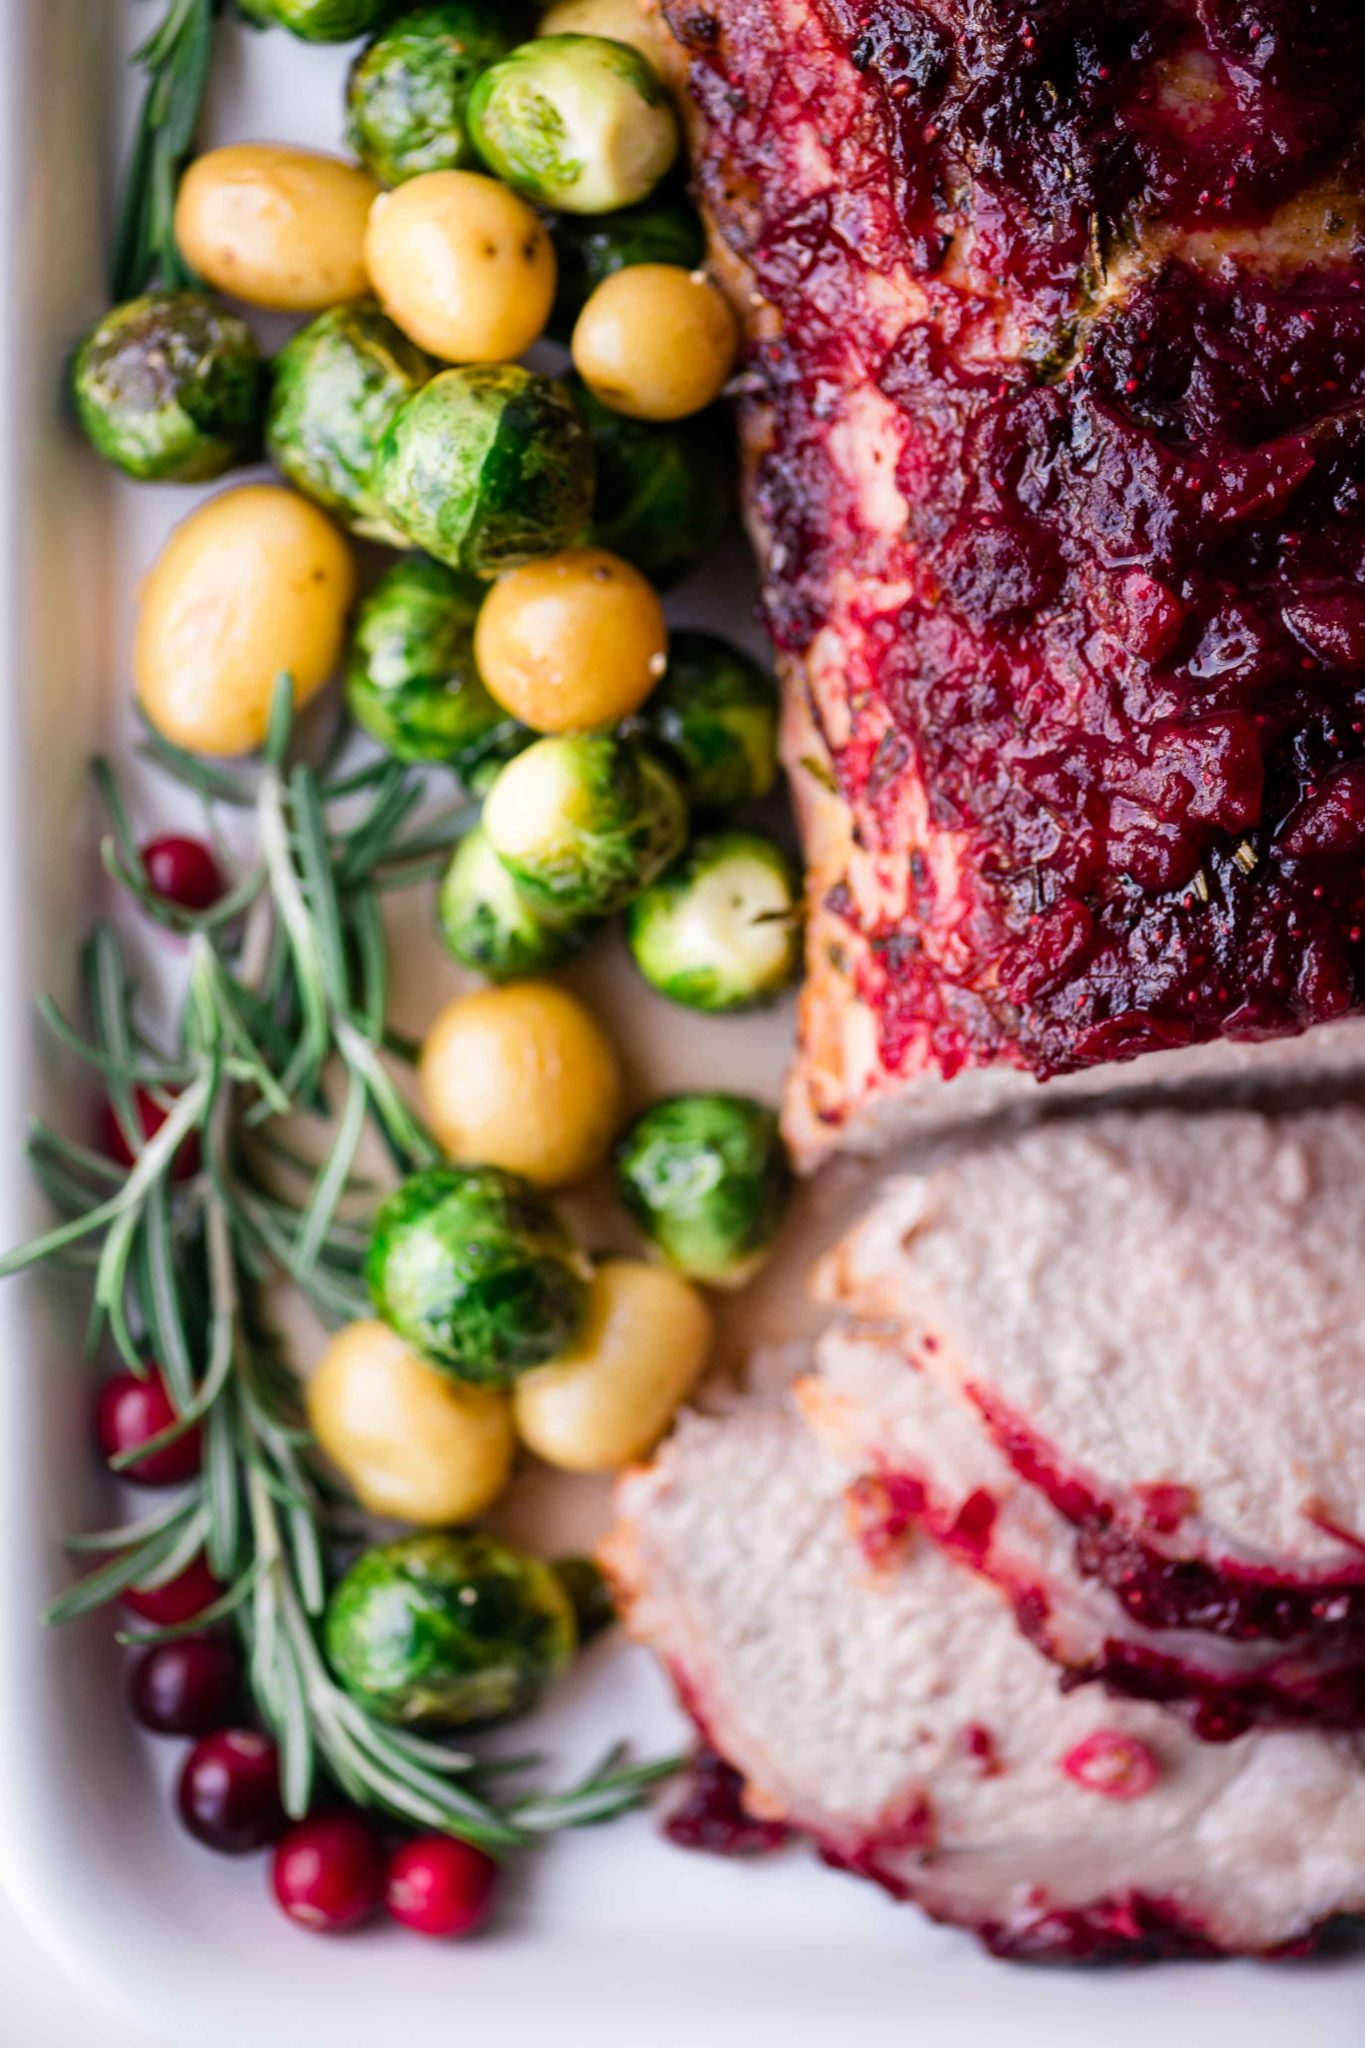 cranberry glazed pork roast with roasted potatoes and Brussels sprouts